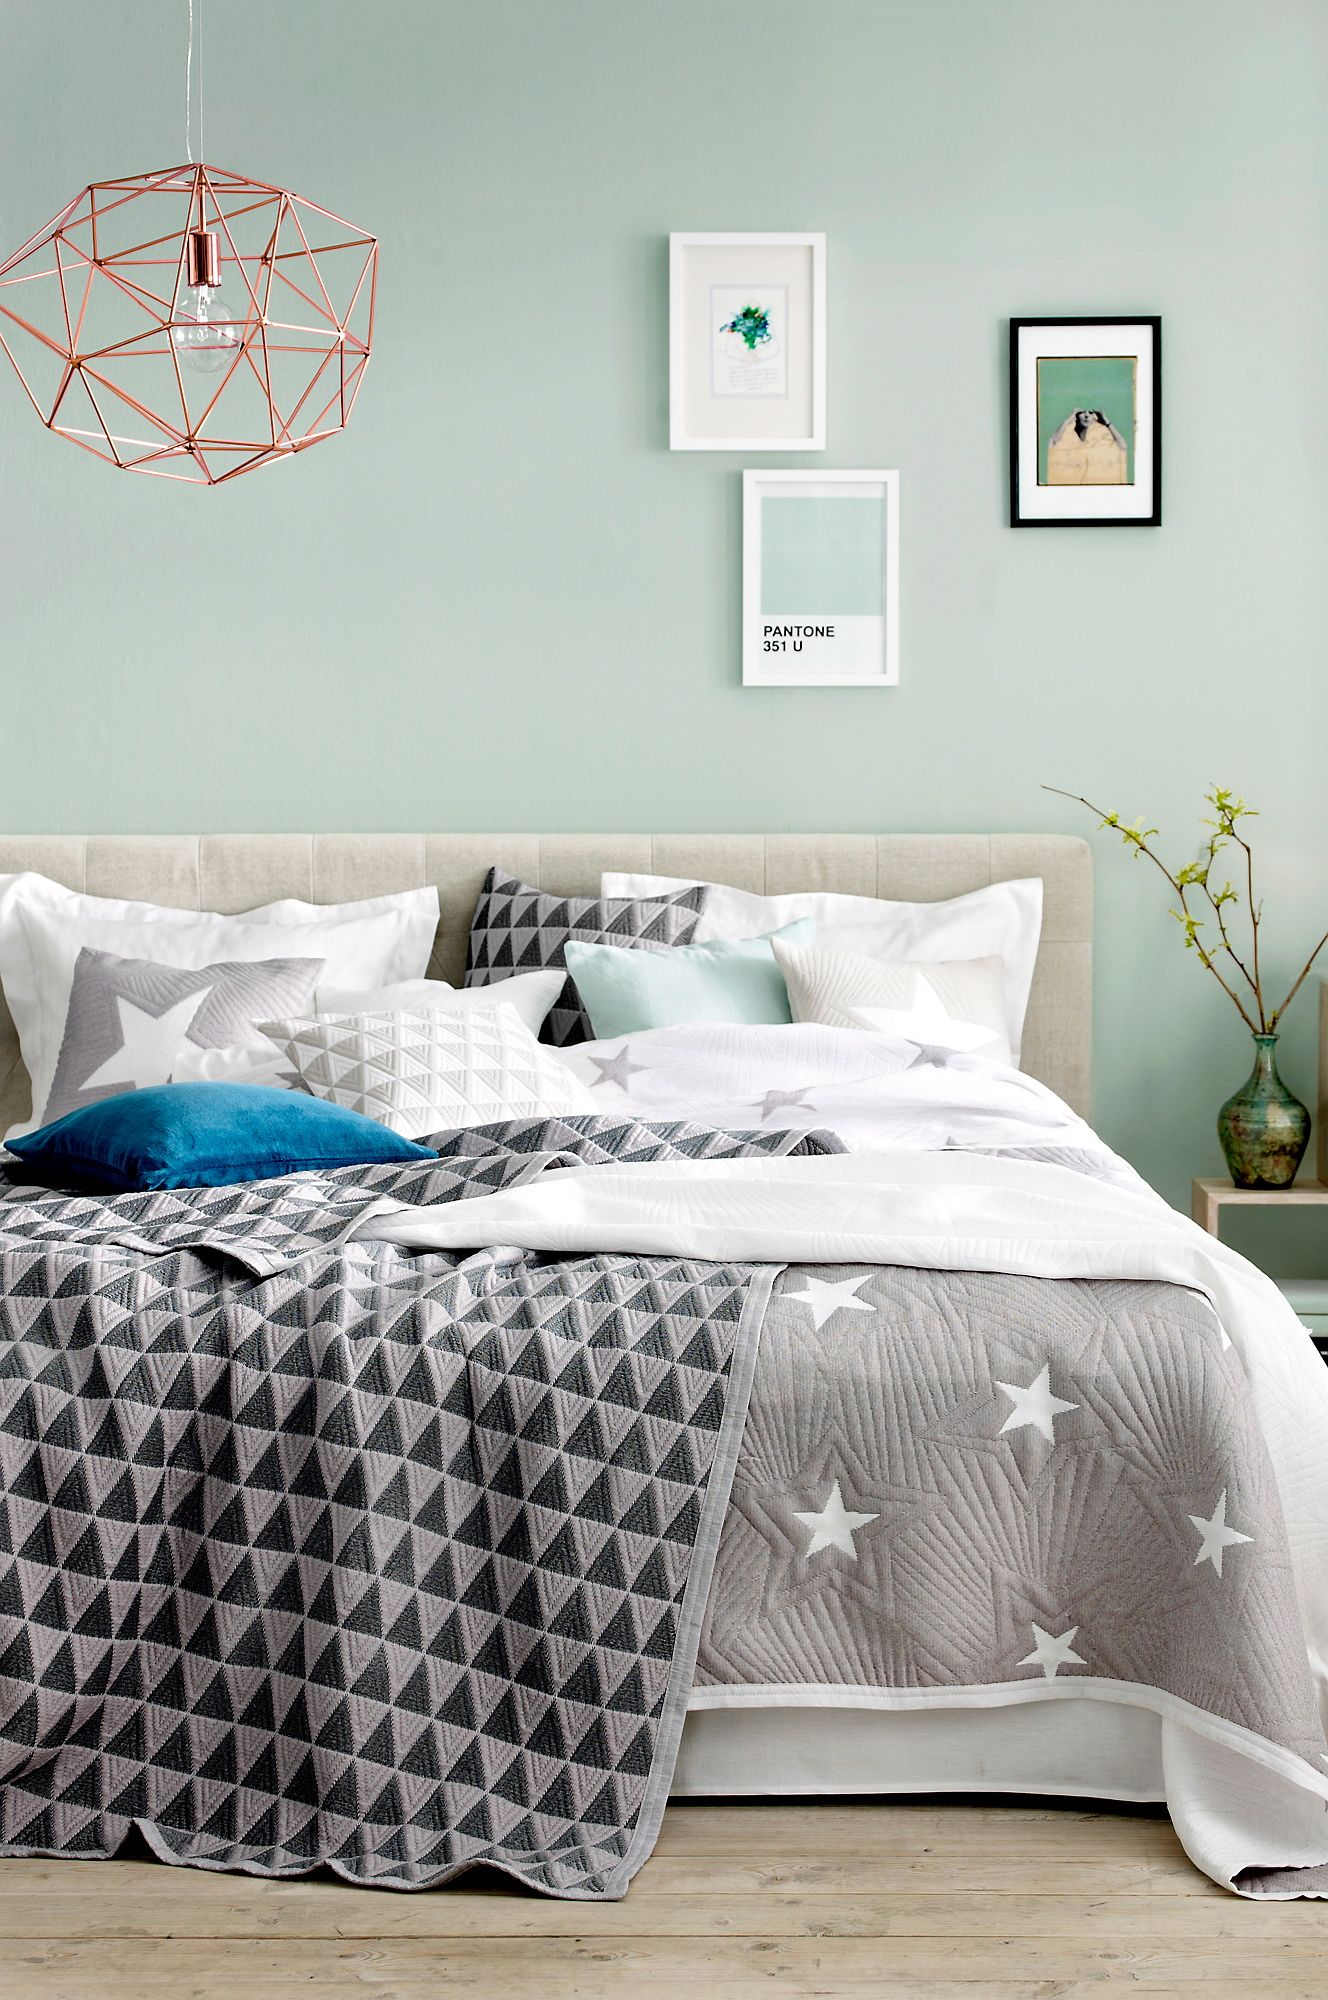 Mint Watery Blue Green Walls Grey Accents Comfy Bed I Like The Star Quilt Bedroom